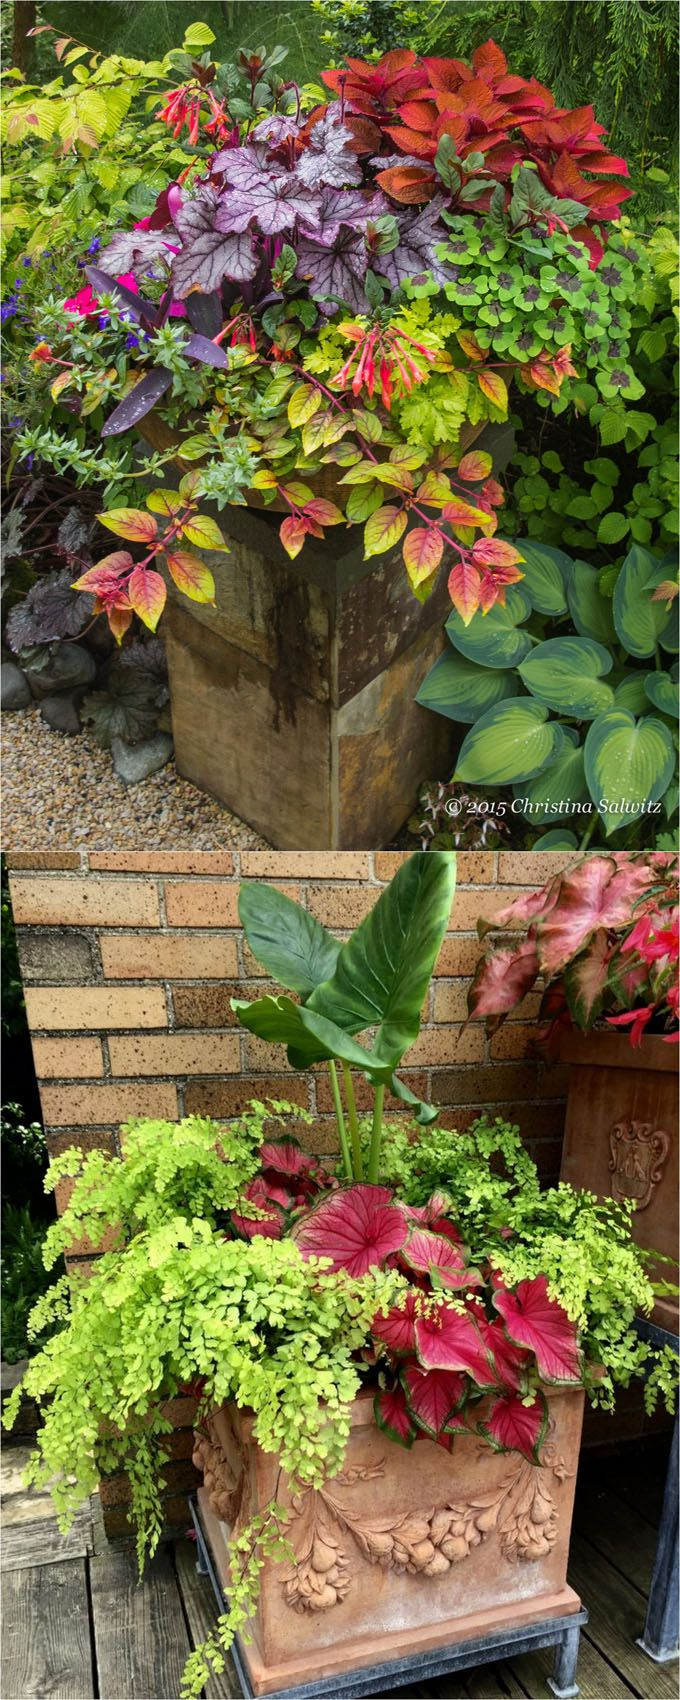 Garden Ideas Pots 1605 best container gardening ideas images on pinterest | garden